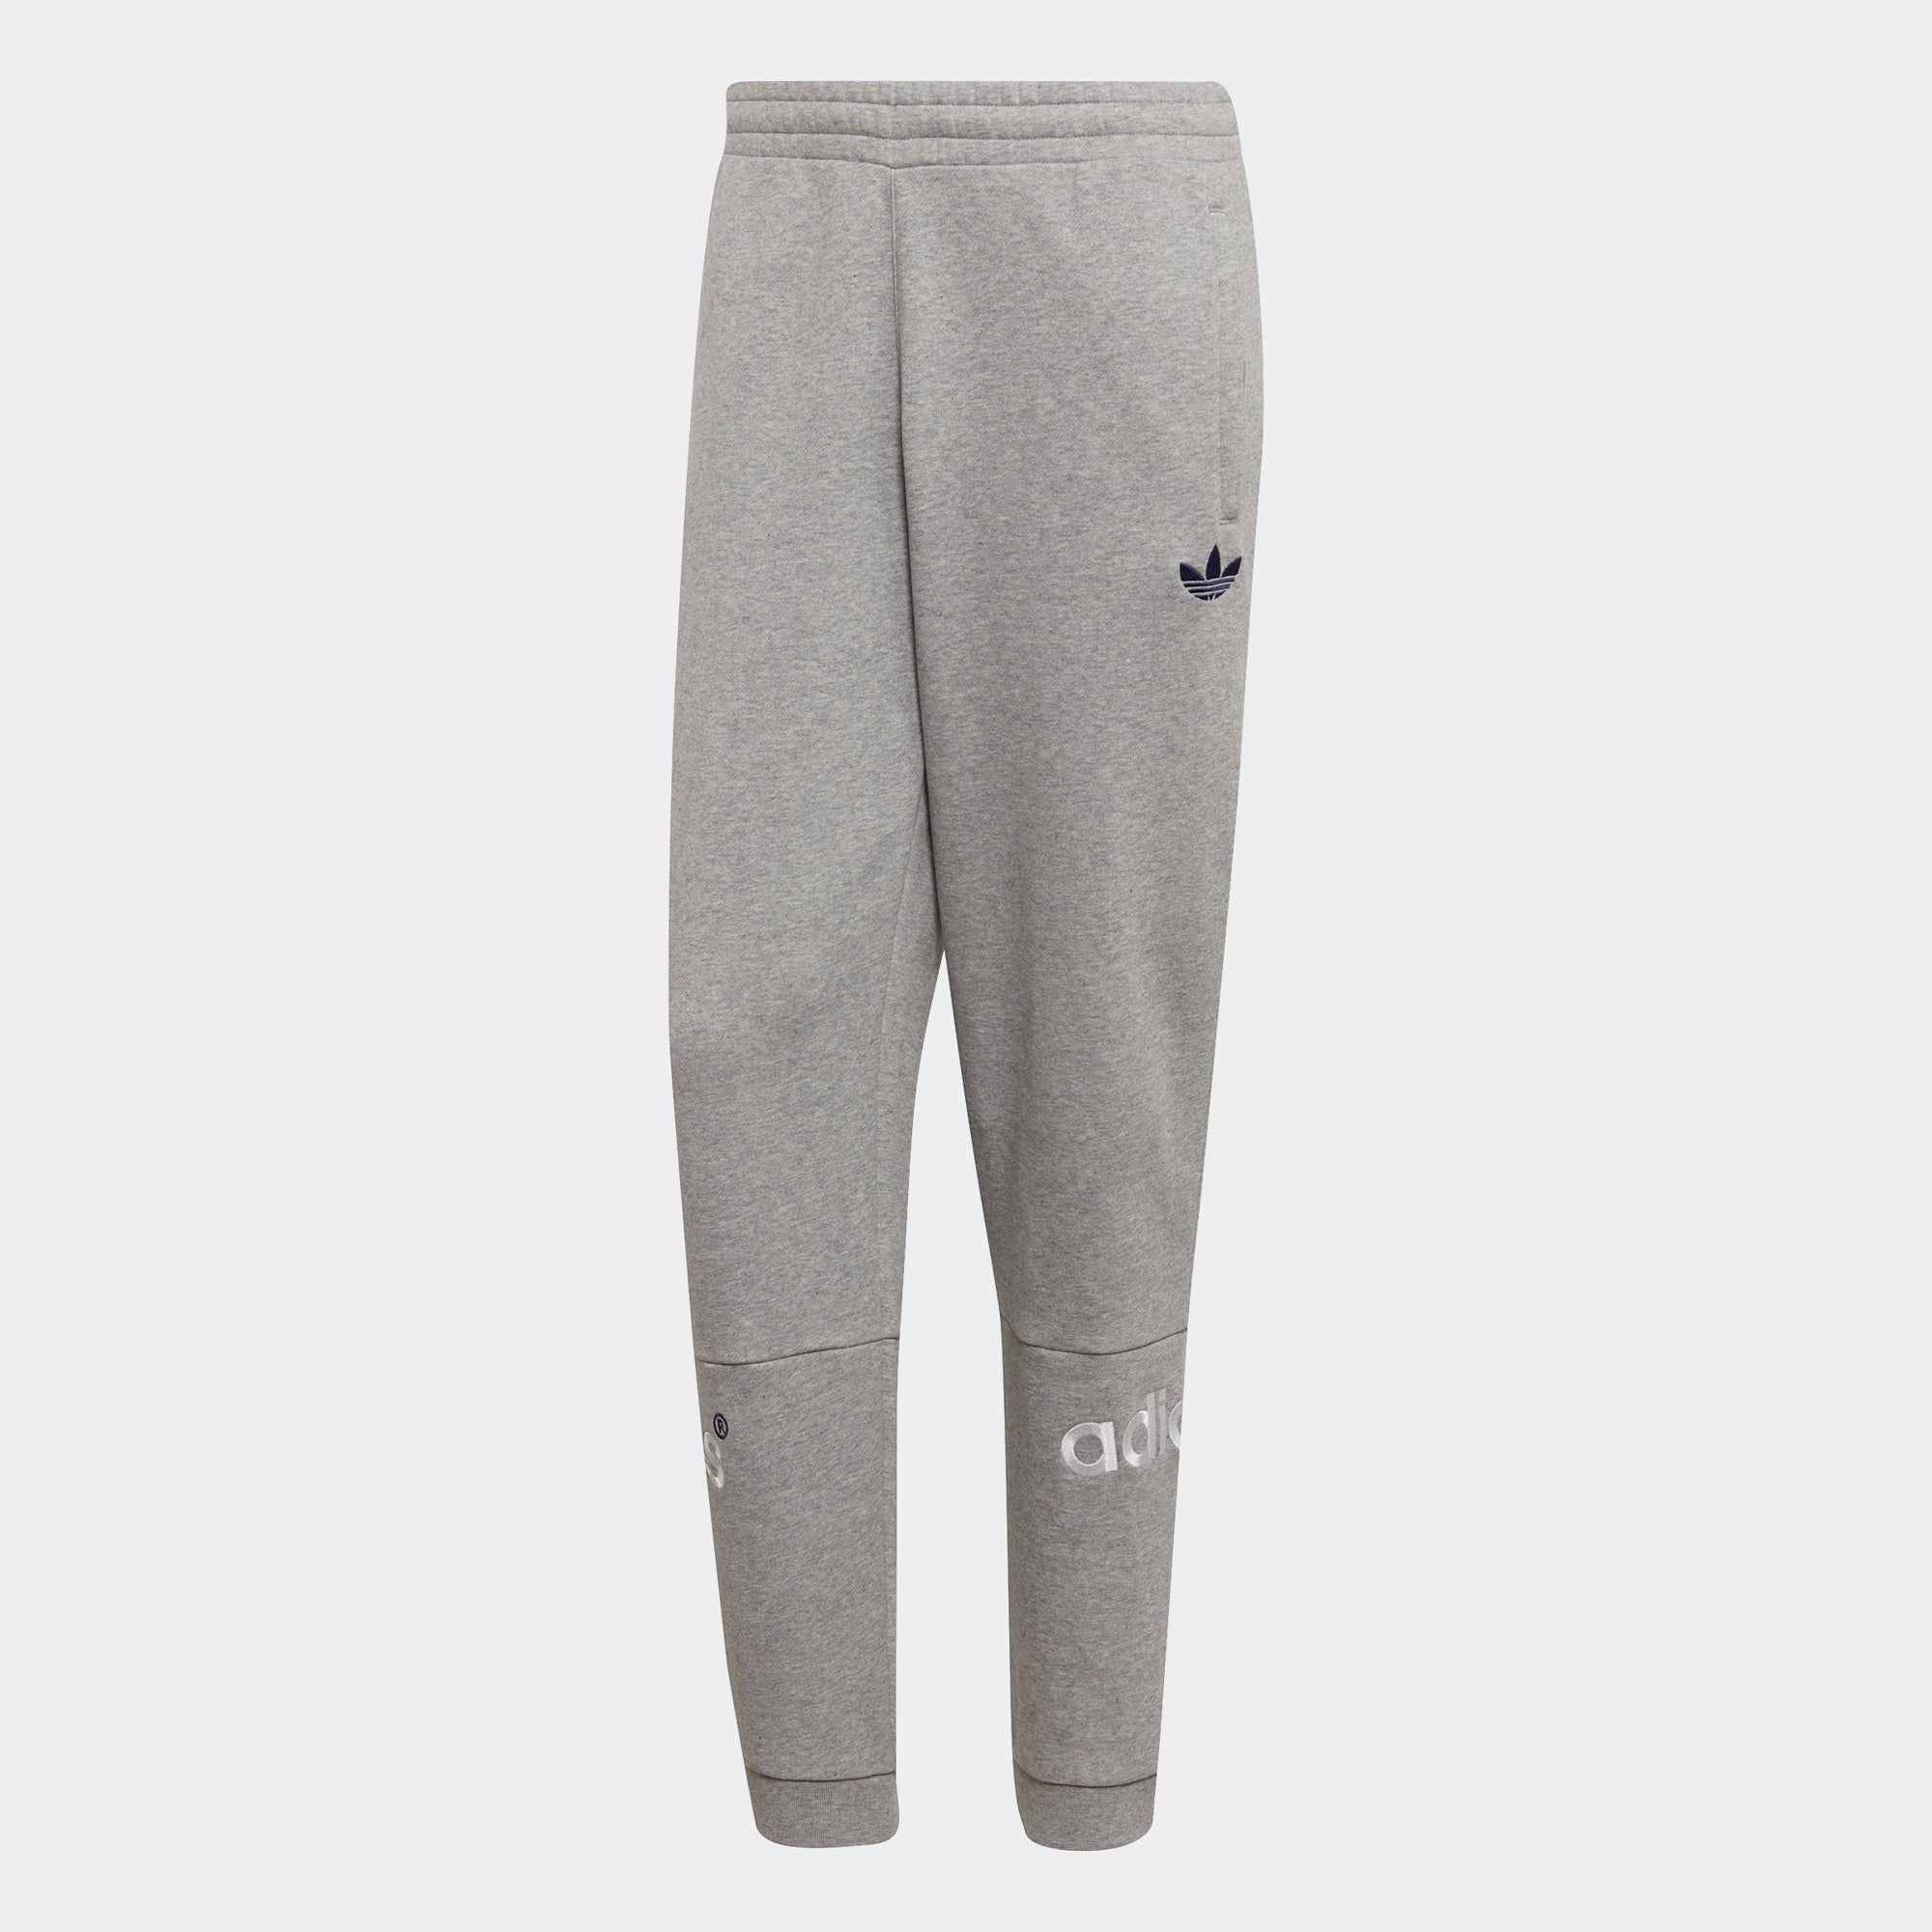 883b80ae9 adidas Archive Sweat Pants Grey FH7917 | Chicago City Sports